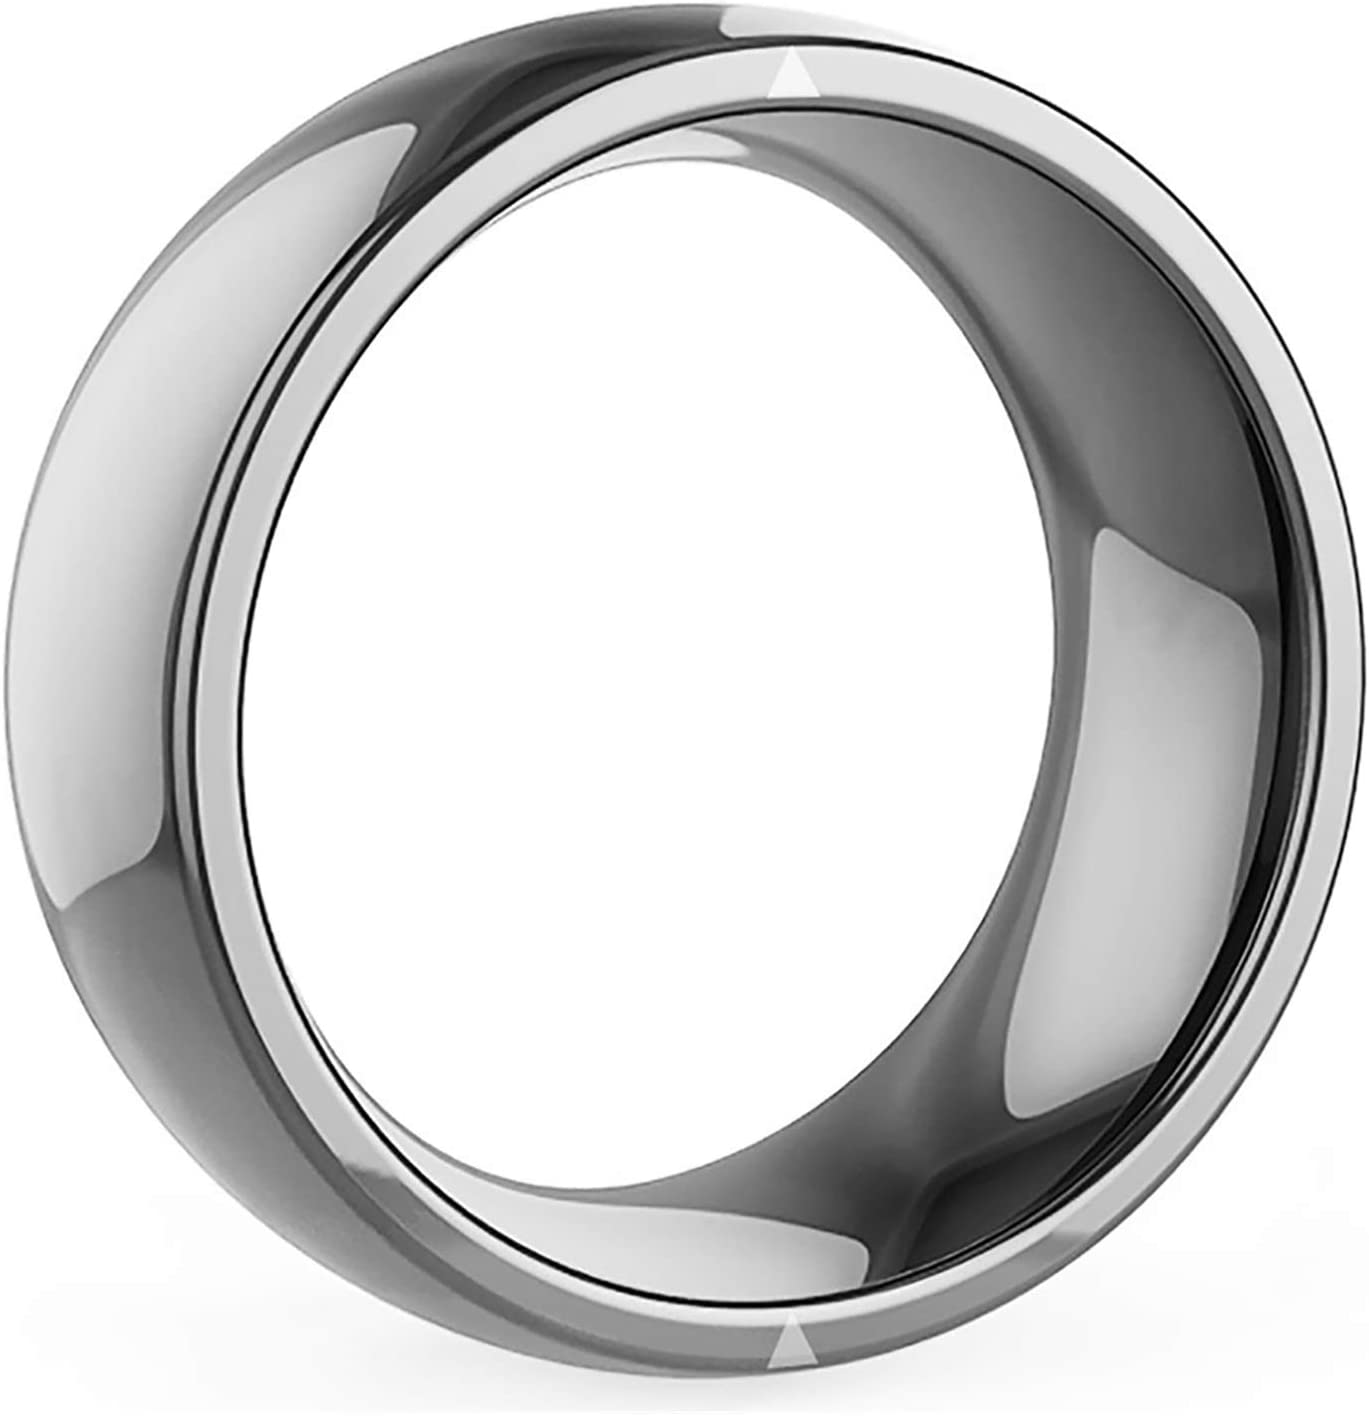 GTJXEY Digital Rings, NFC Smart Ring for All Android Windows NFC Cellphone Mobile Phones, APP Lock, URL Sharing, Private Message (Color : Size10)